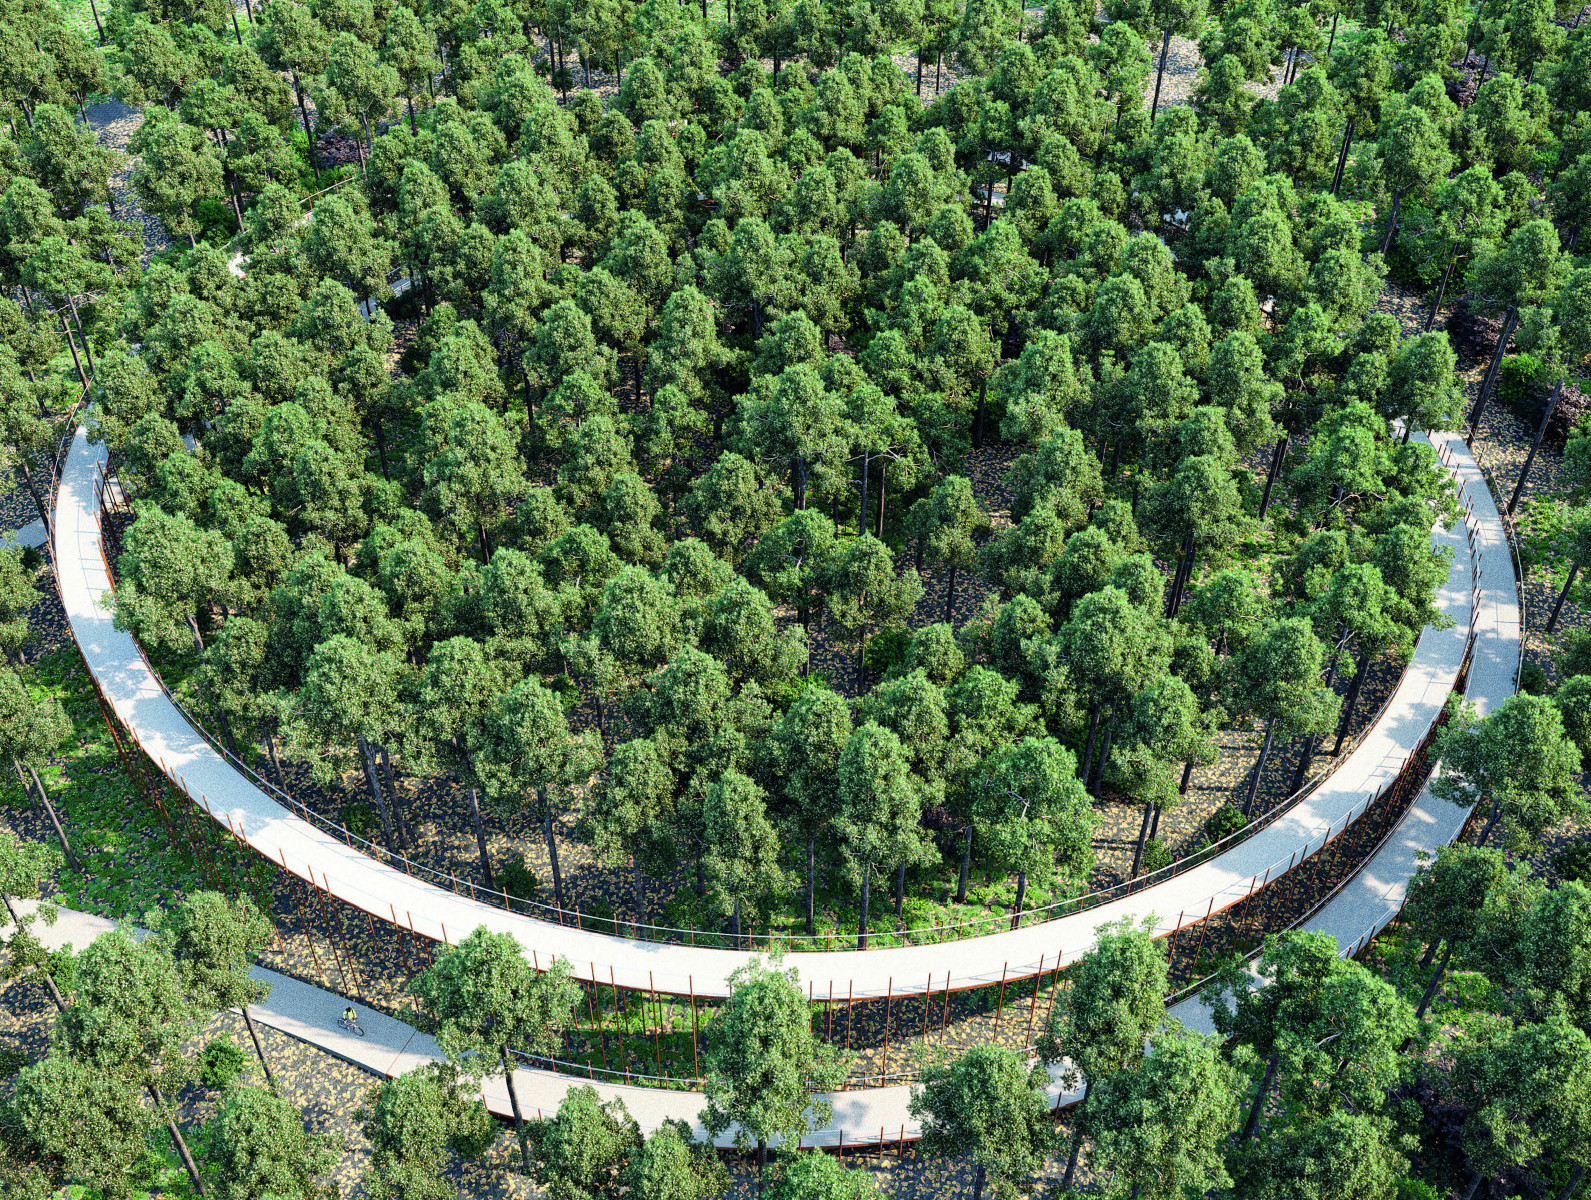 Limburg has designed a path that carries cyclists up into the air